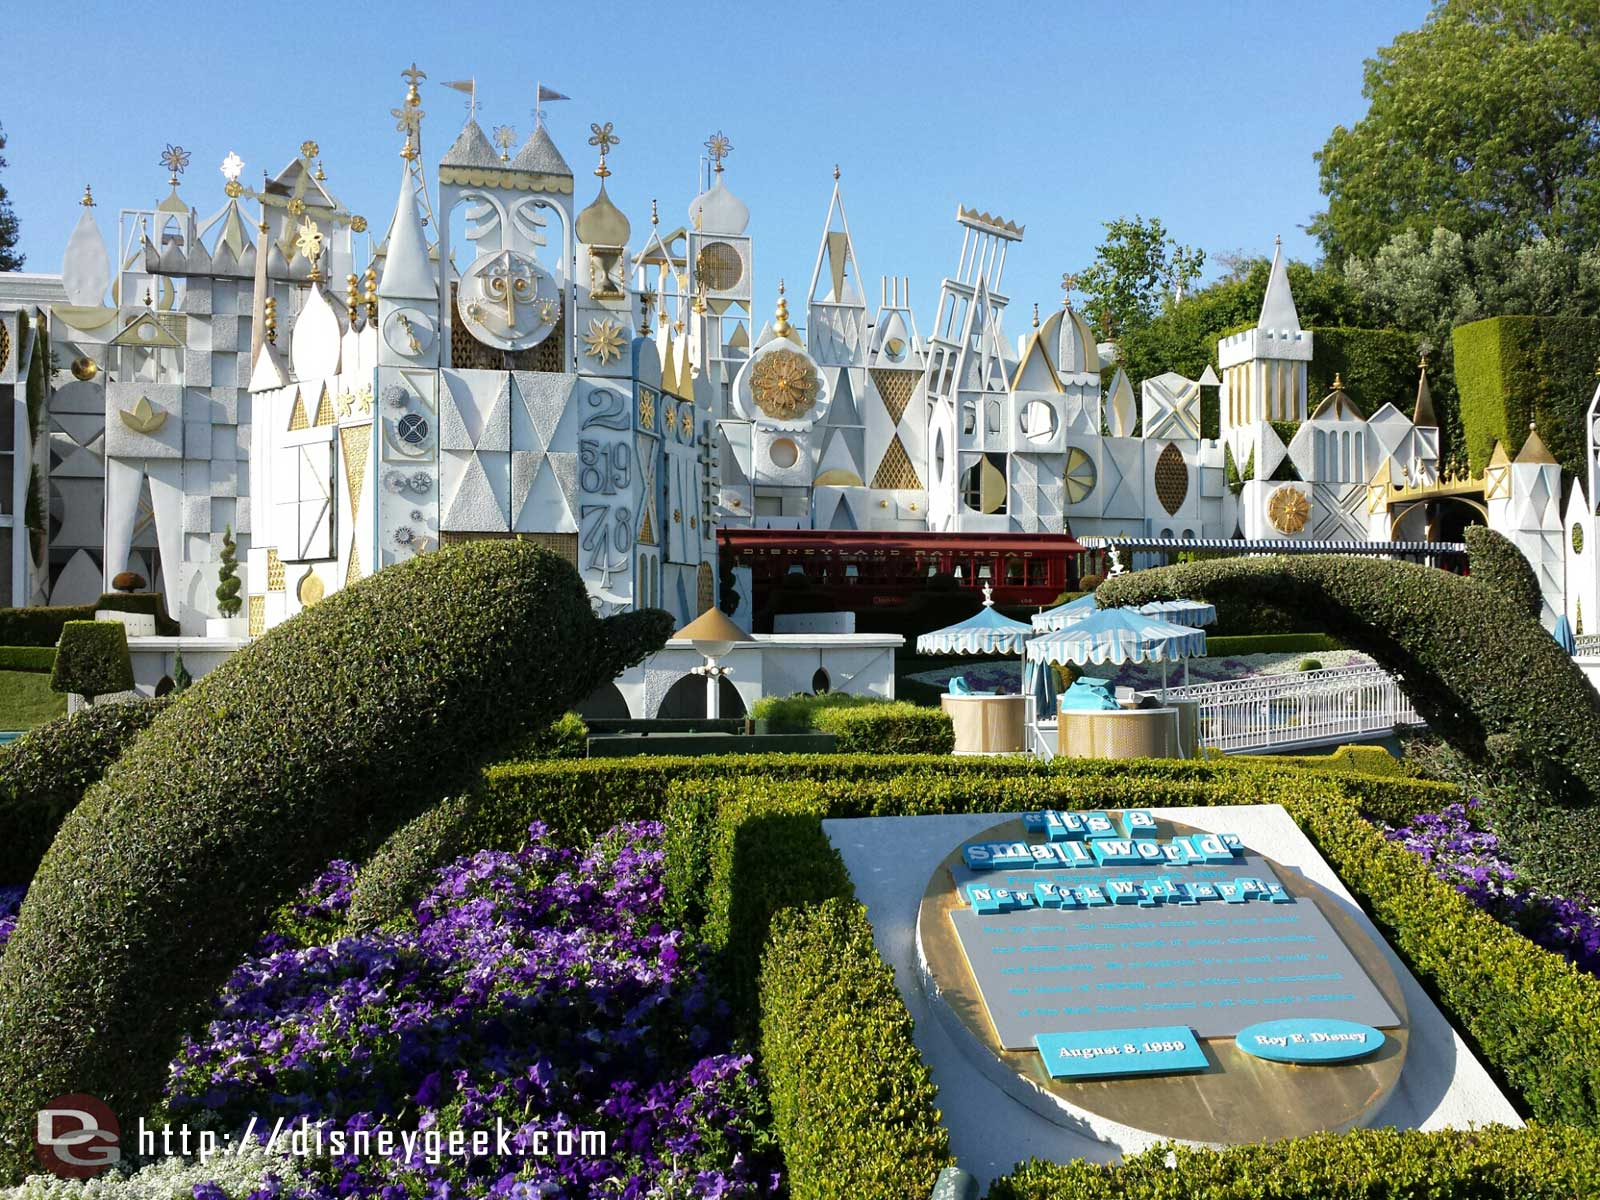 It's a small world is still closed for renovations